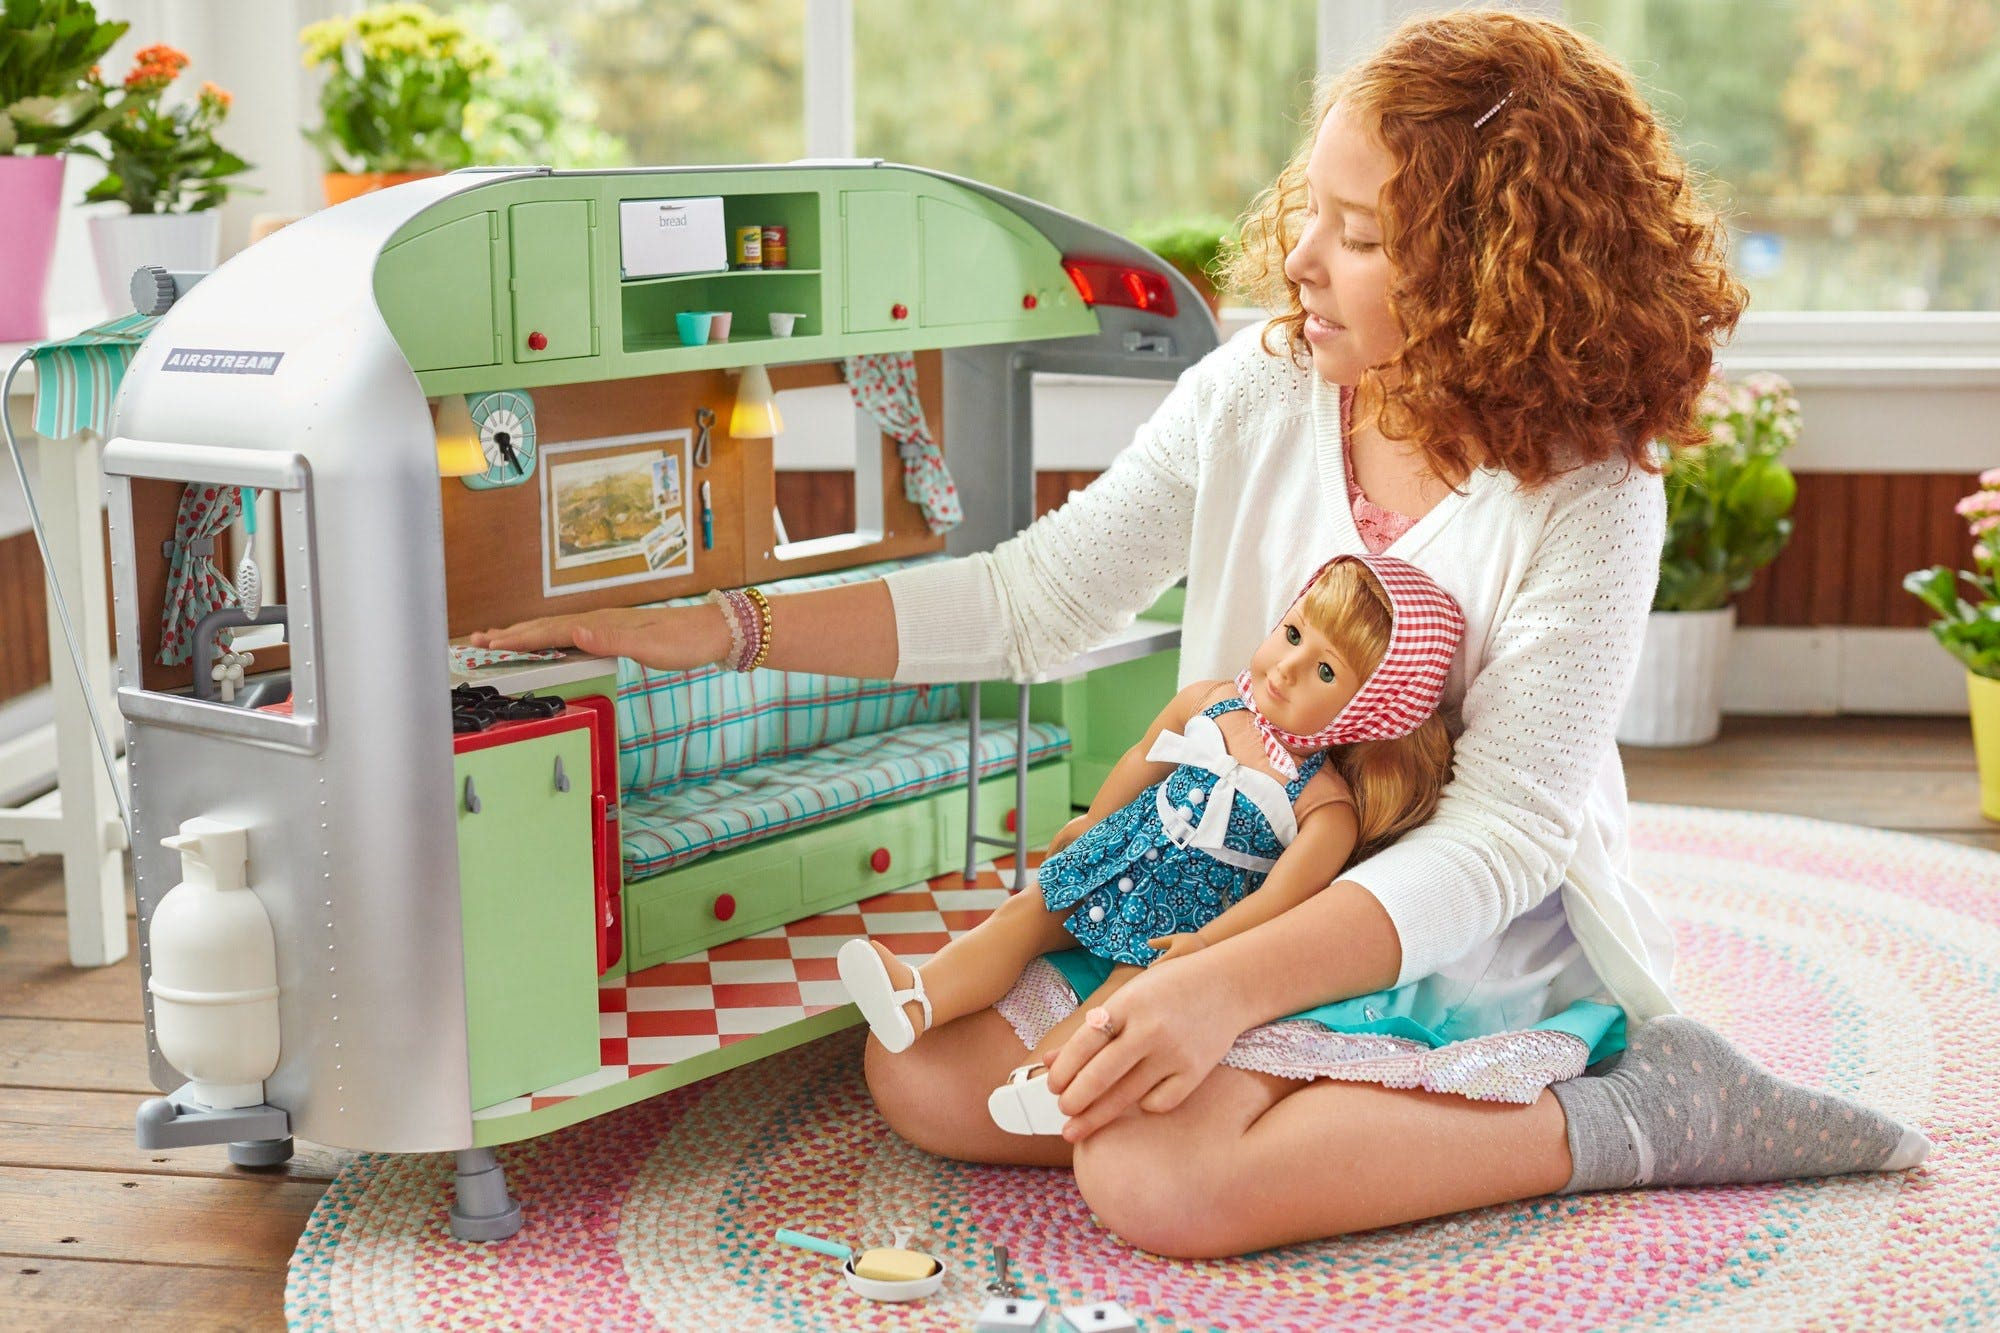 American Girl and Airstream Travel Trailer